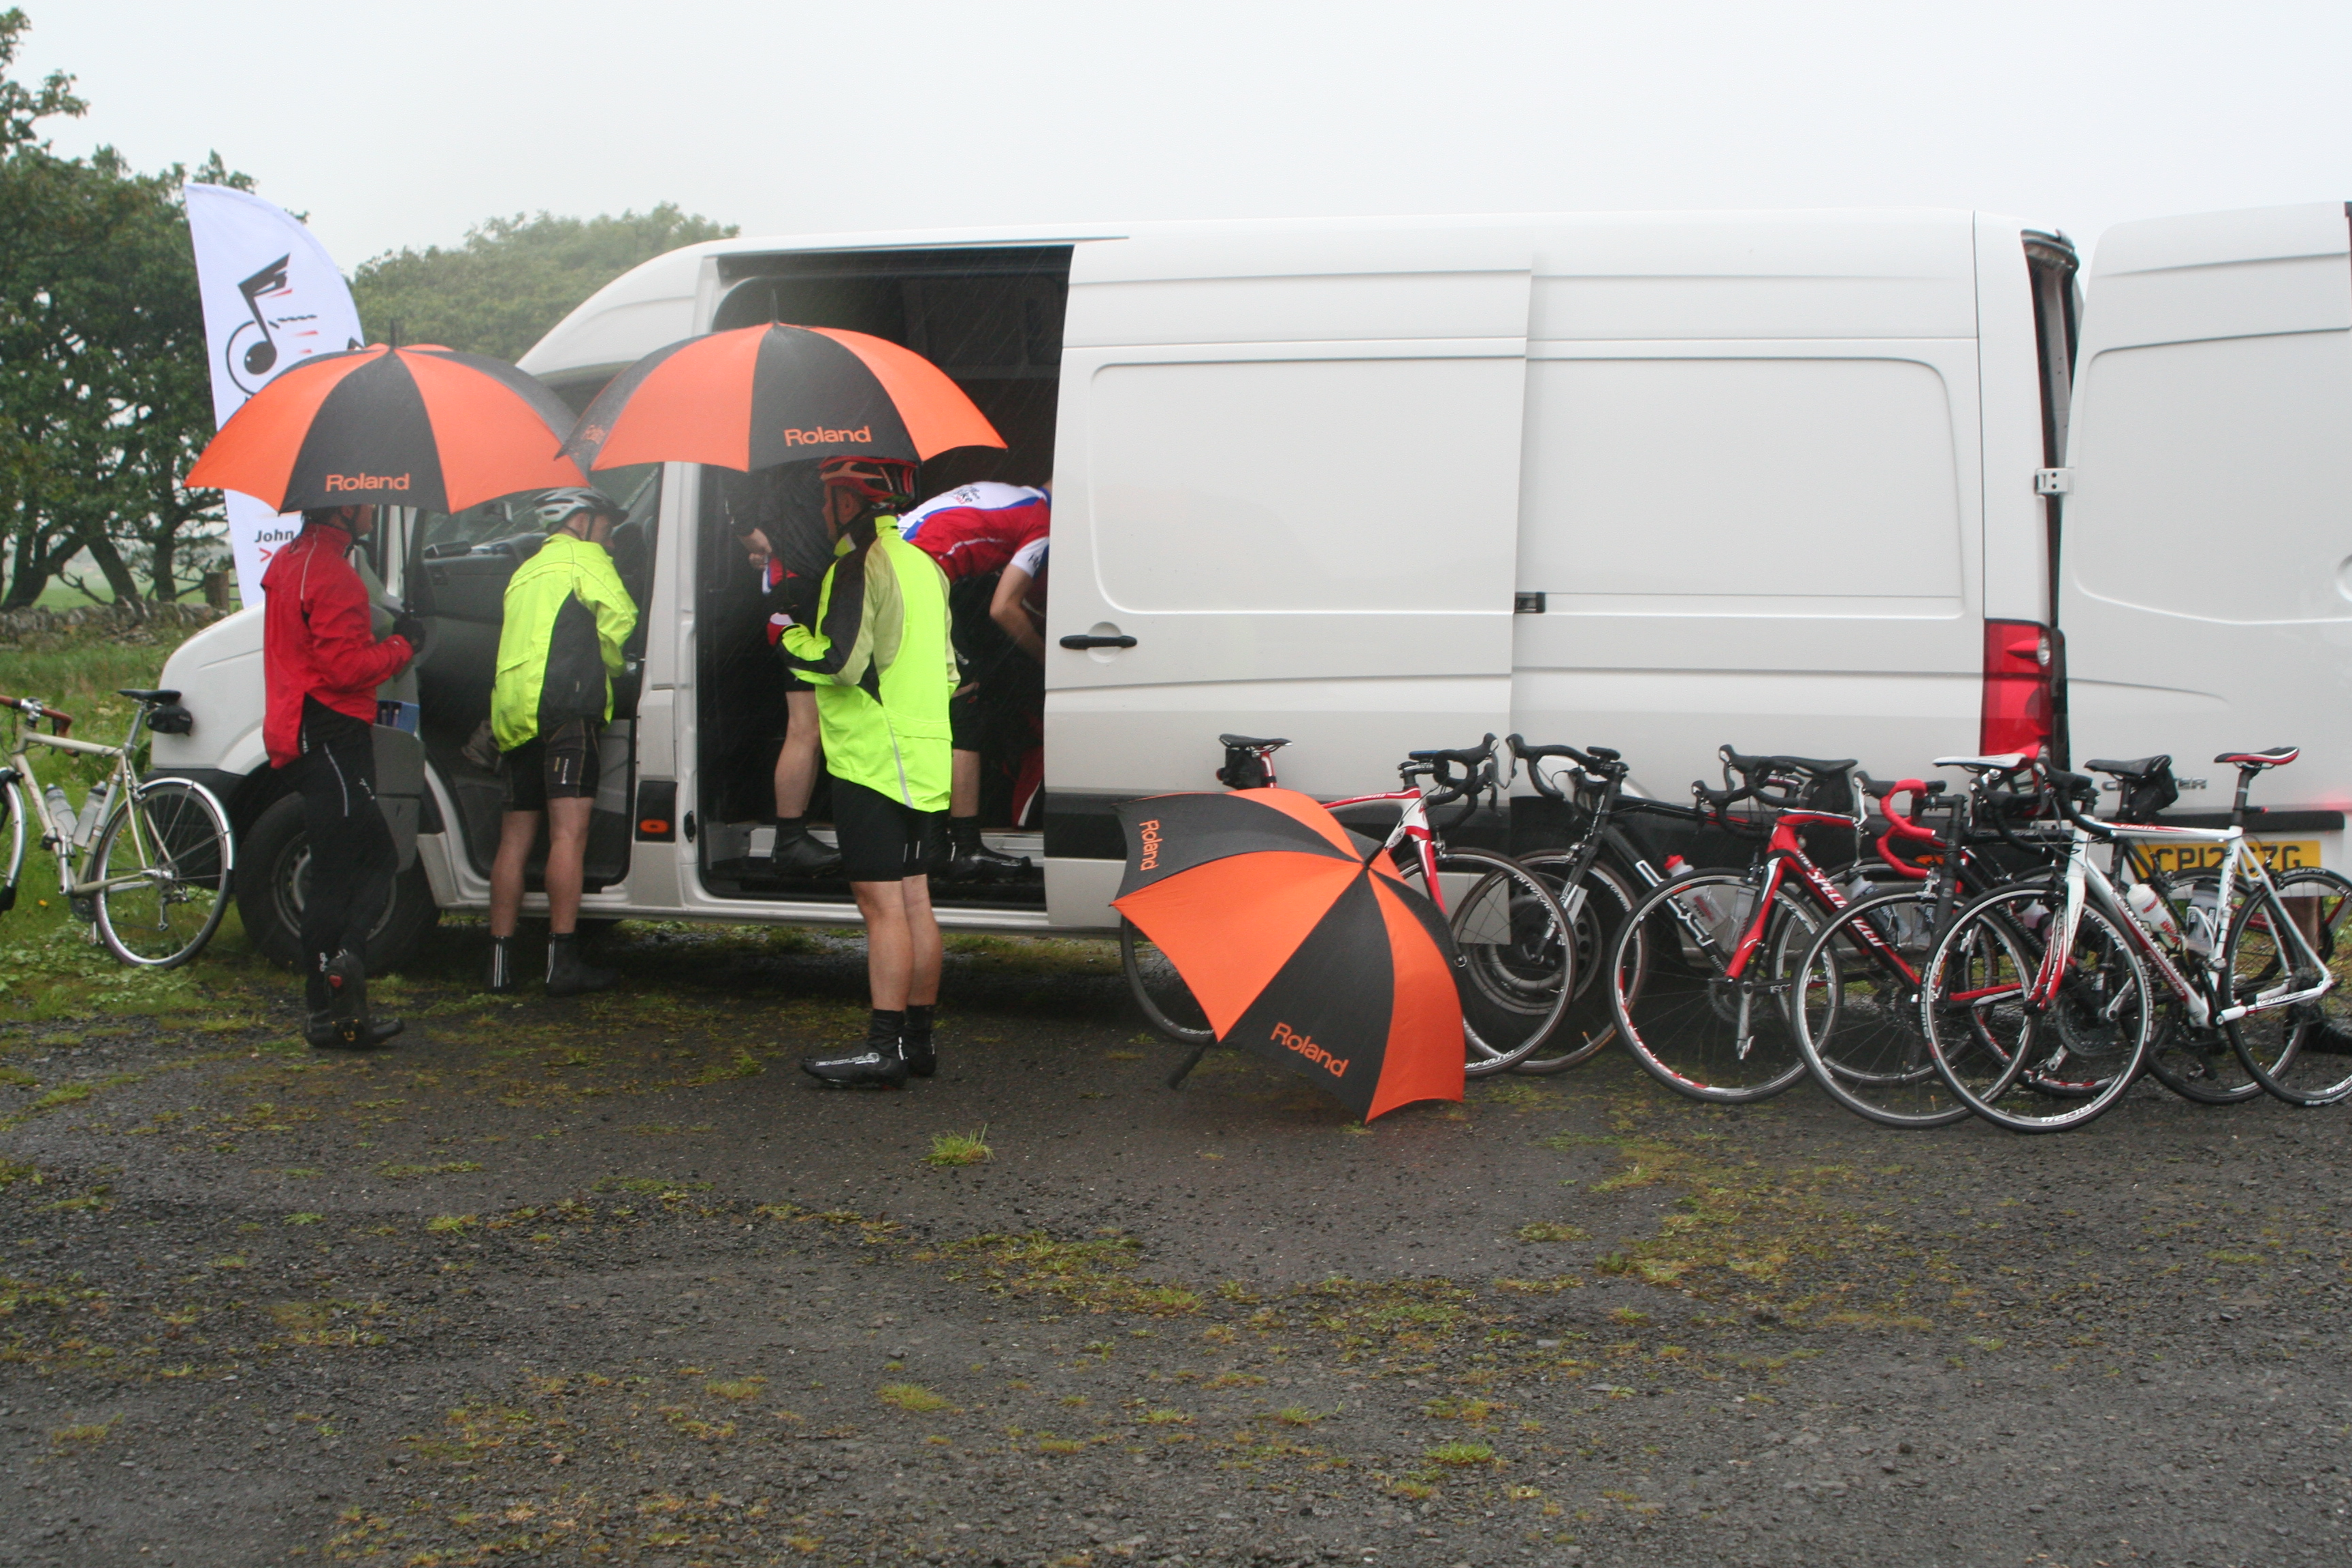 Terry's van in full swing on Day 1 of Three Men on a Bike 2012